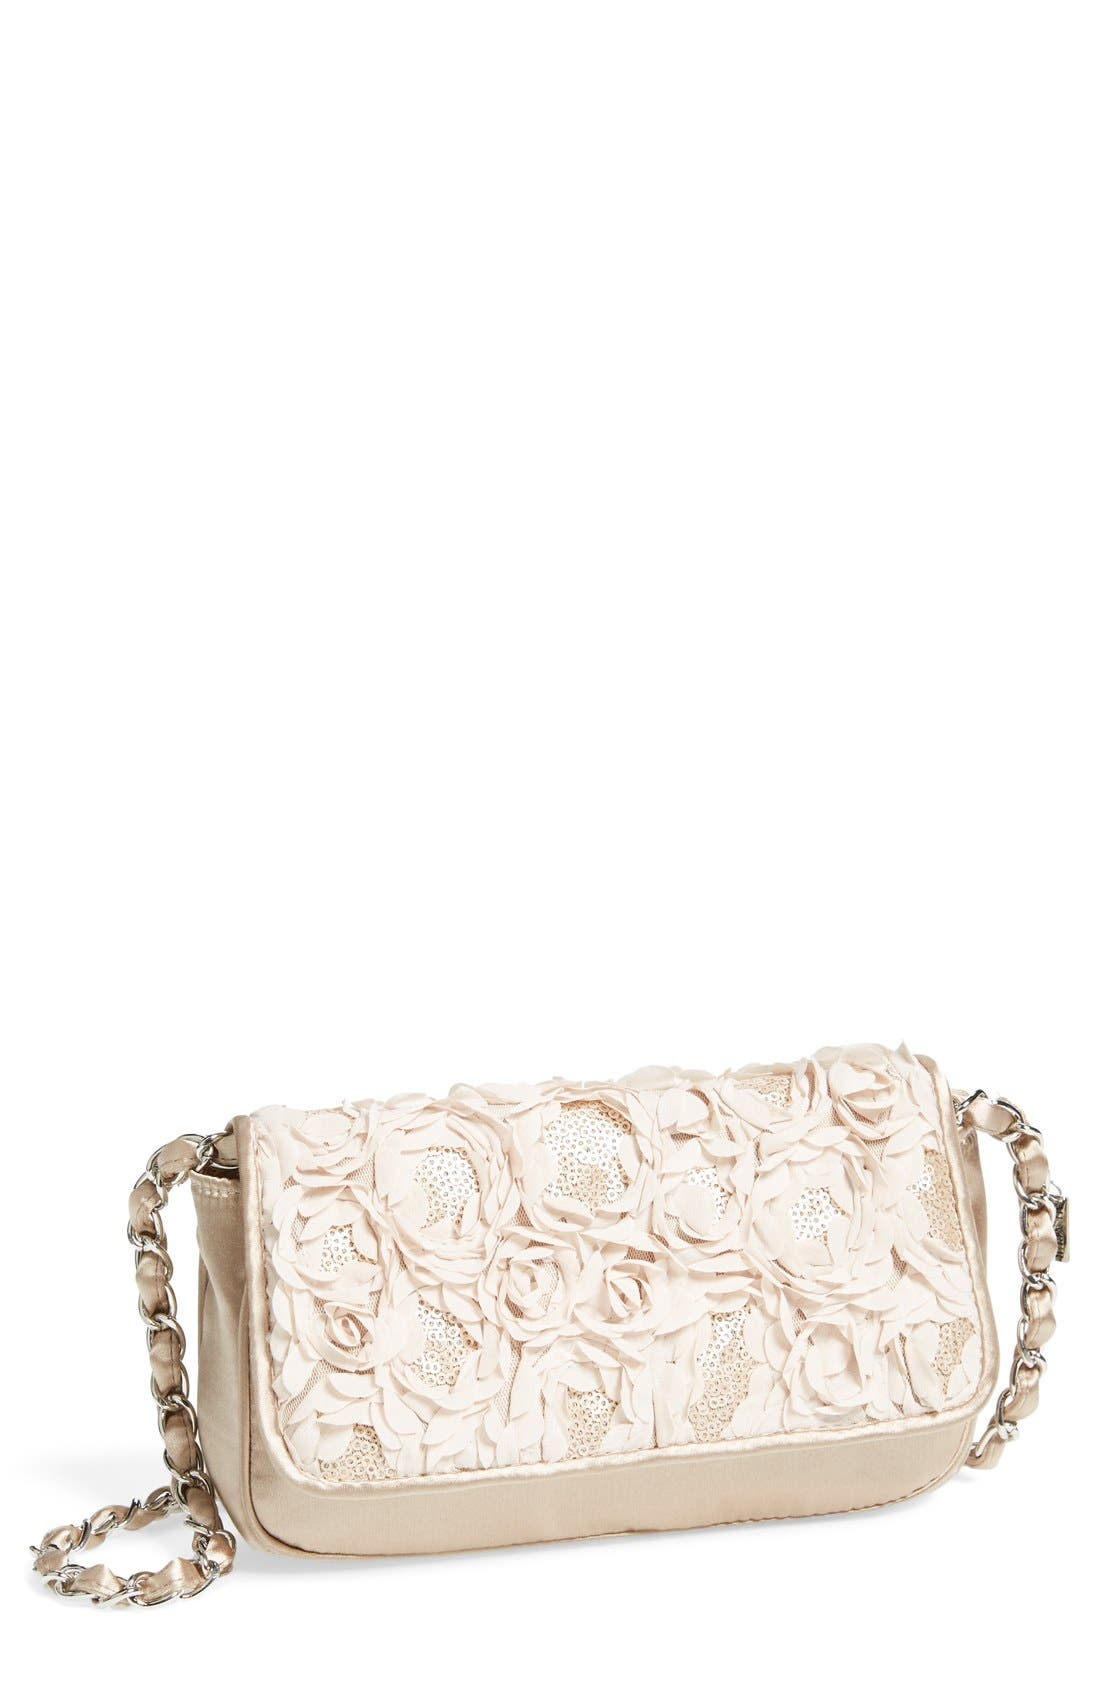 'Lassus' Satin Clutch,                             Main thumbnail 1, color,                             Stone